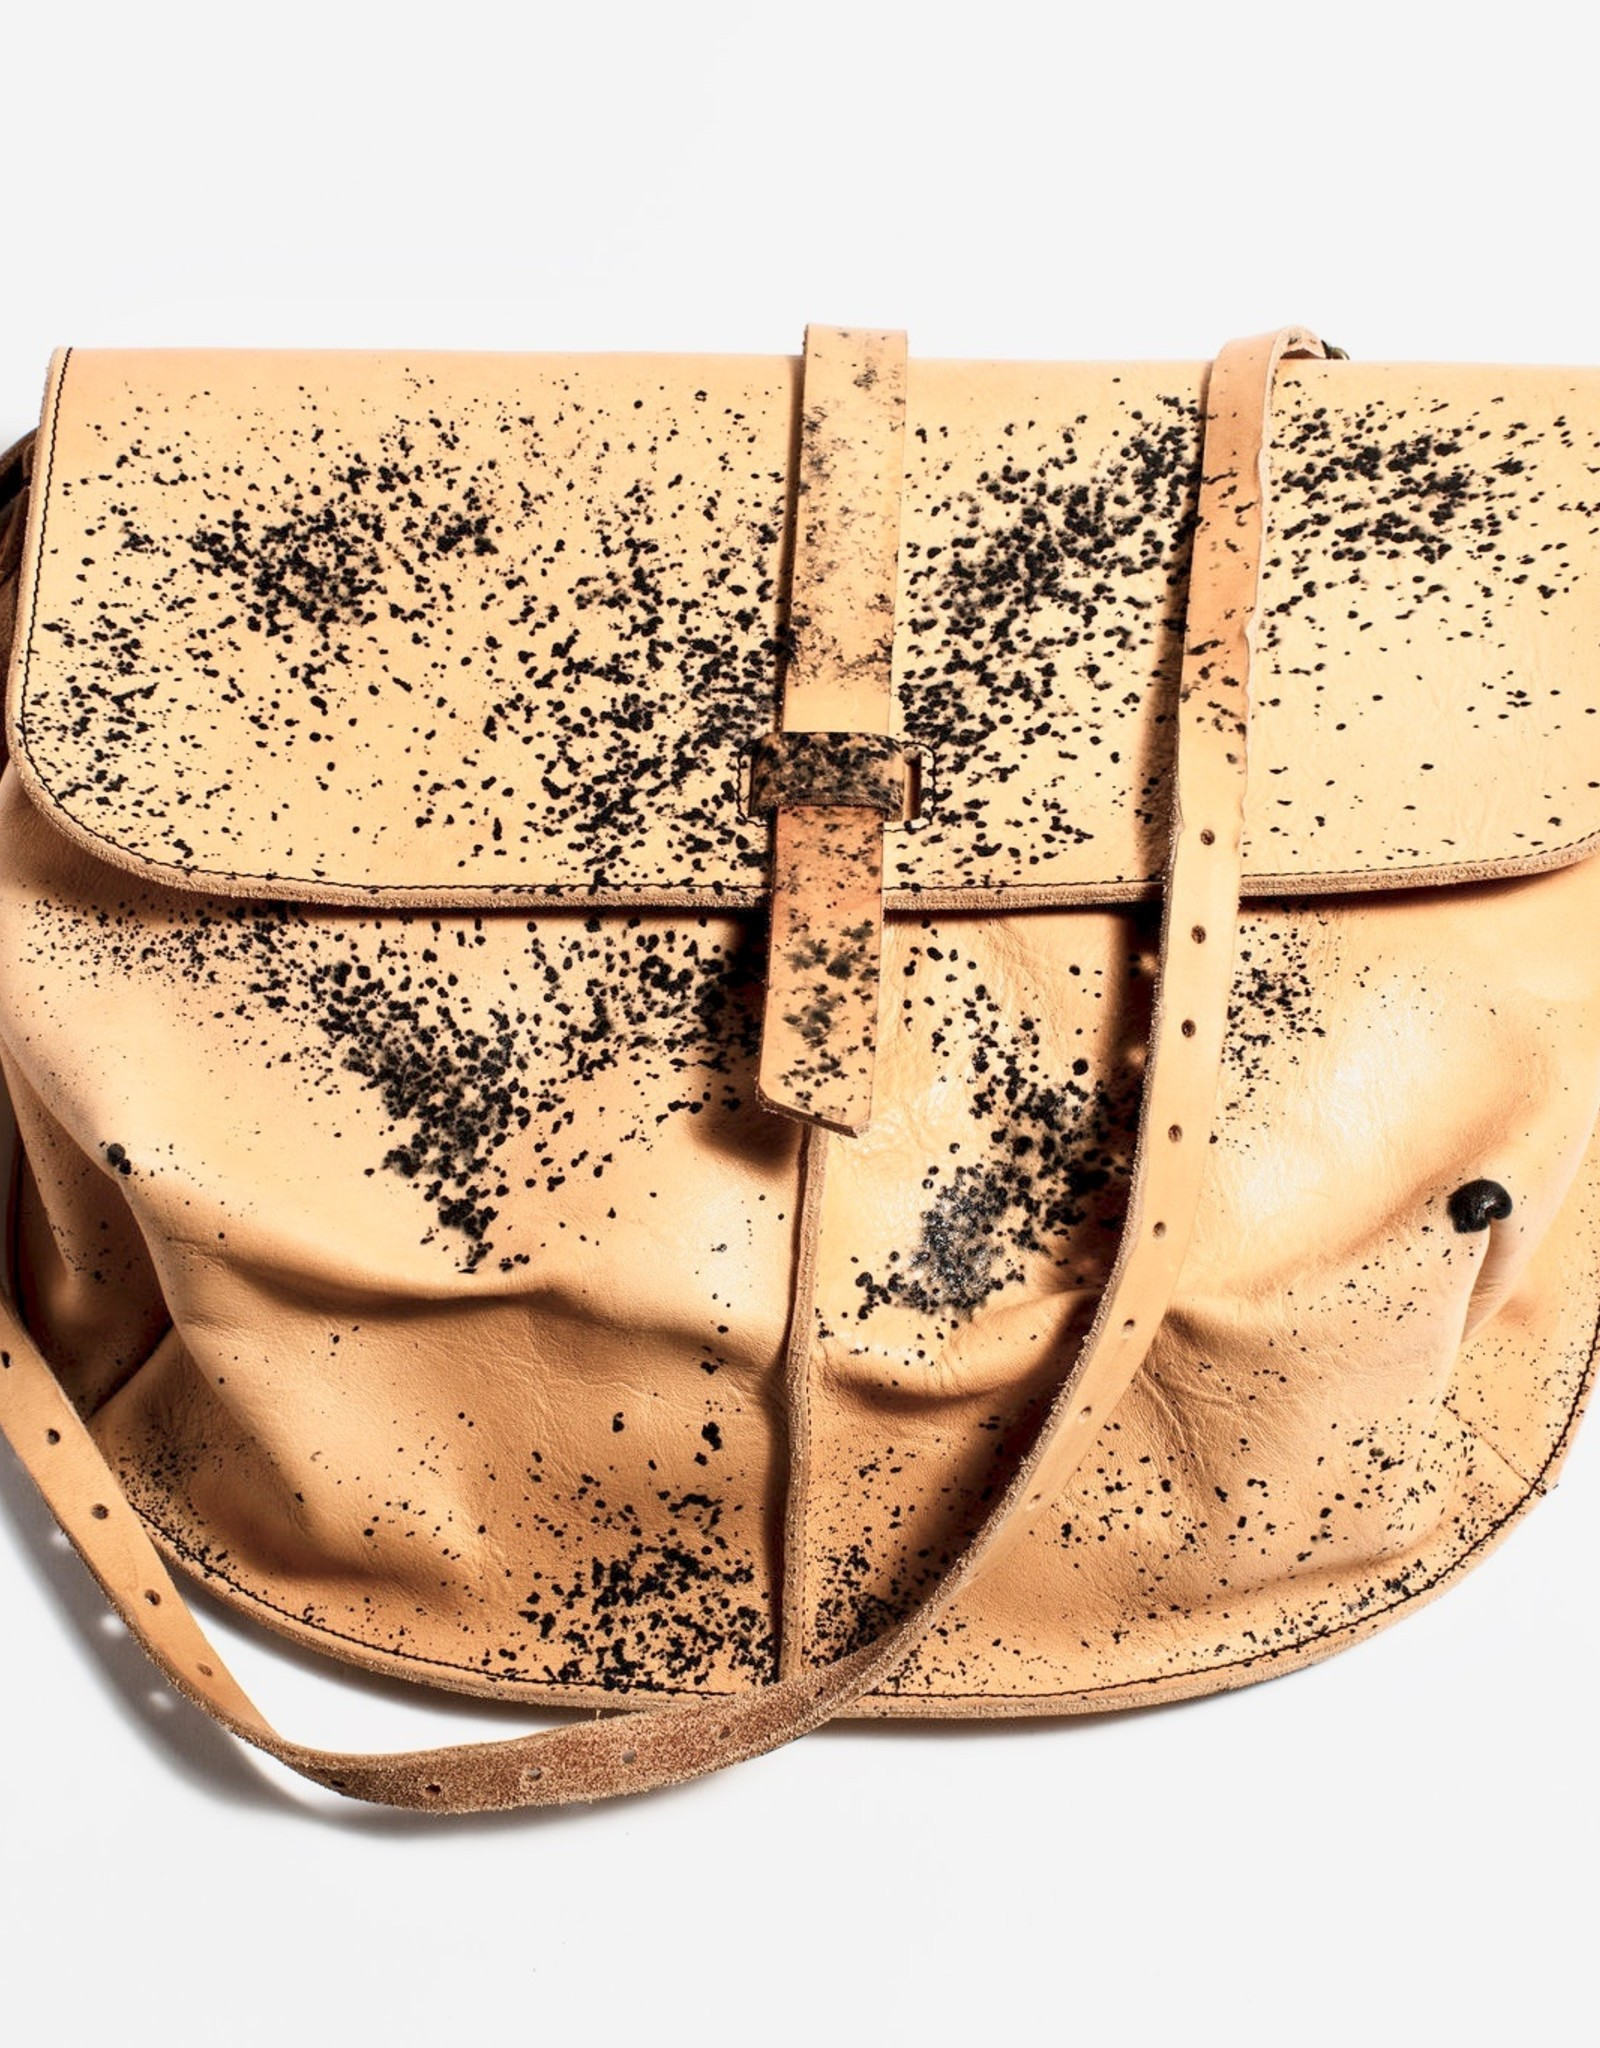 Esde Leather Postman Bag - Rust